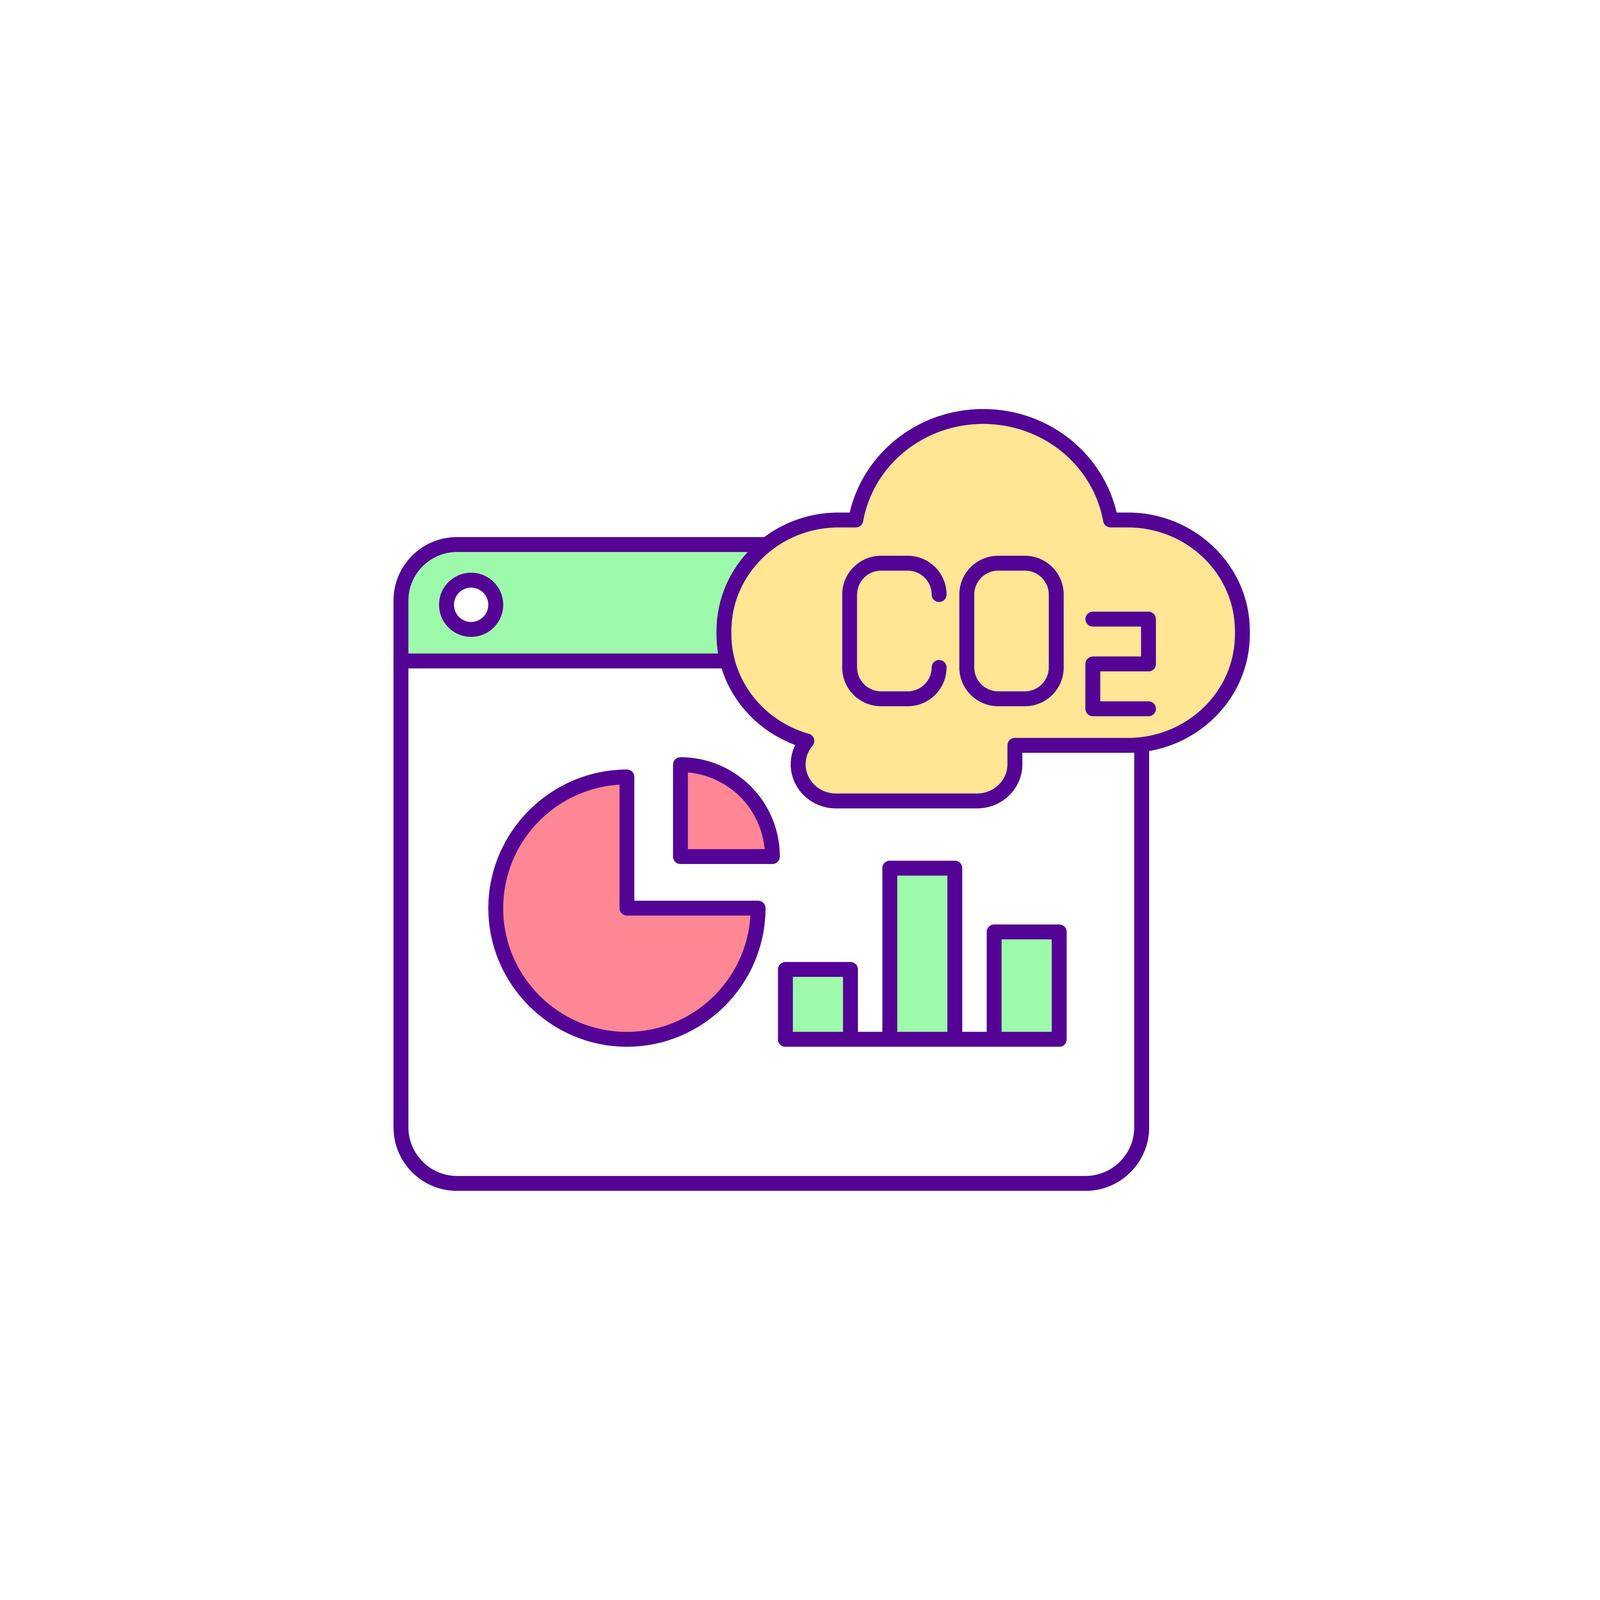 Carbon emissions measurement RGB color icon. Reducing greenhouse gases. Carbon footprint. Fighting global warming. Calculating emissions. Isolated vector illustration. Simple filled line drawing